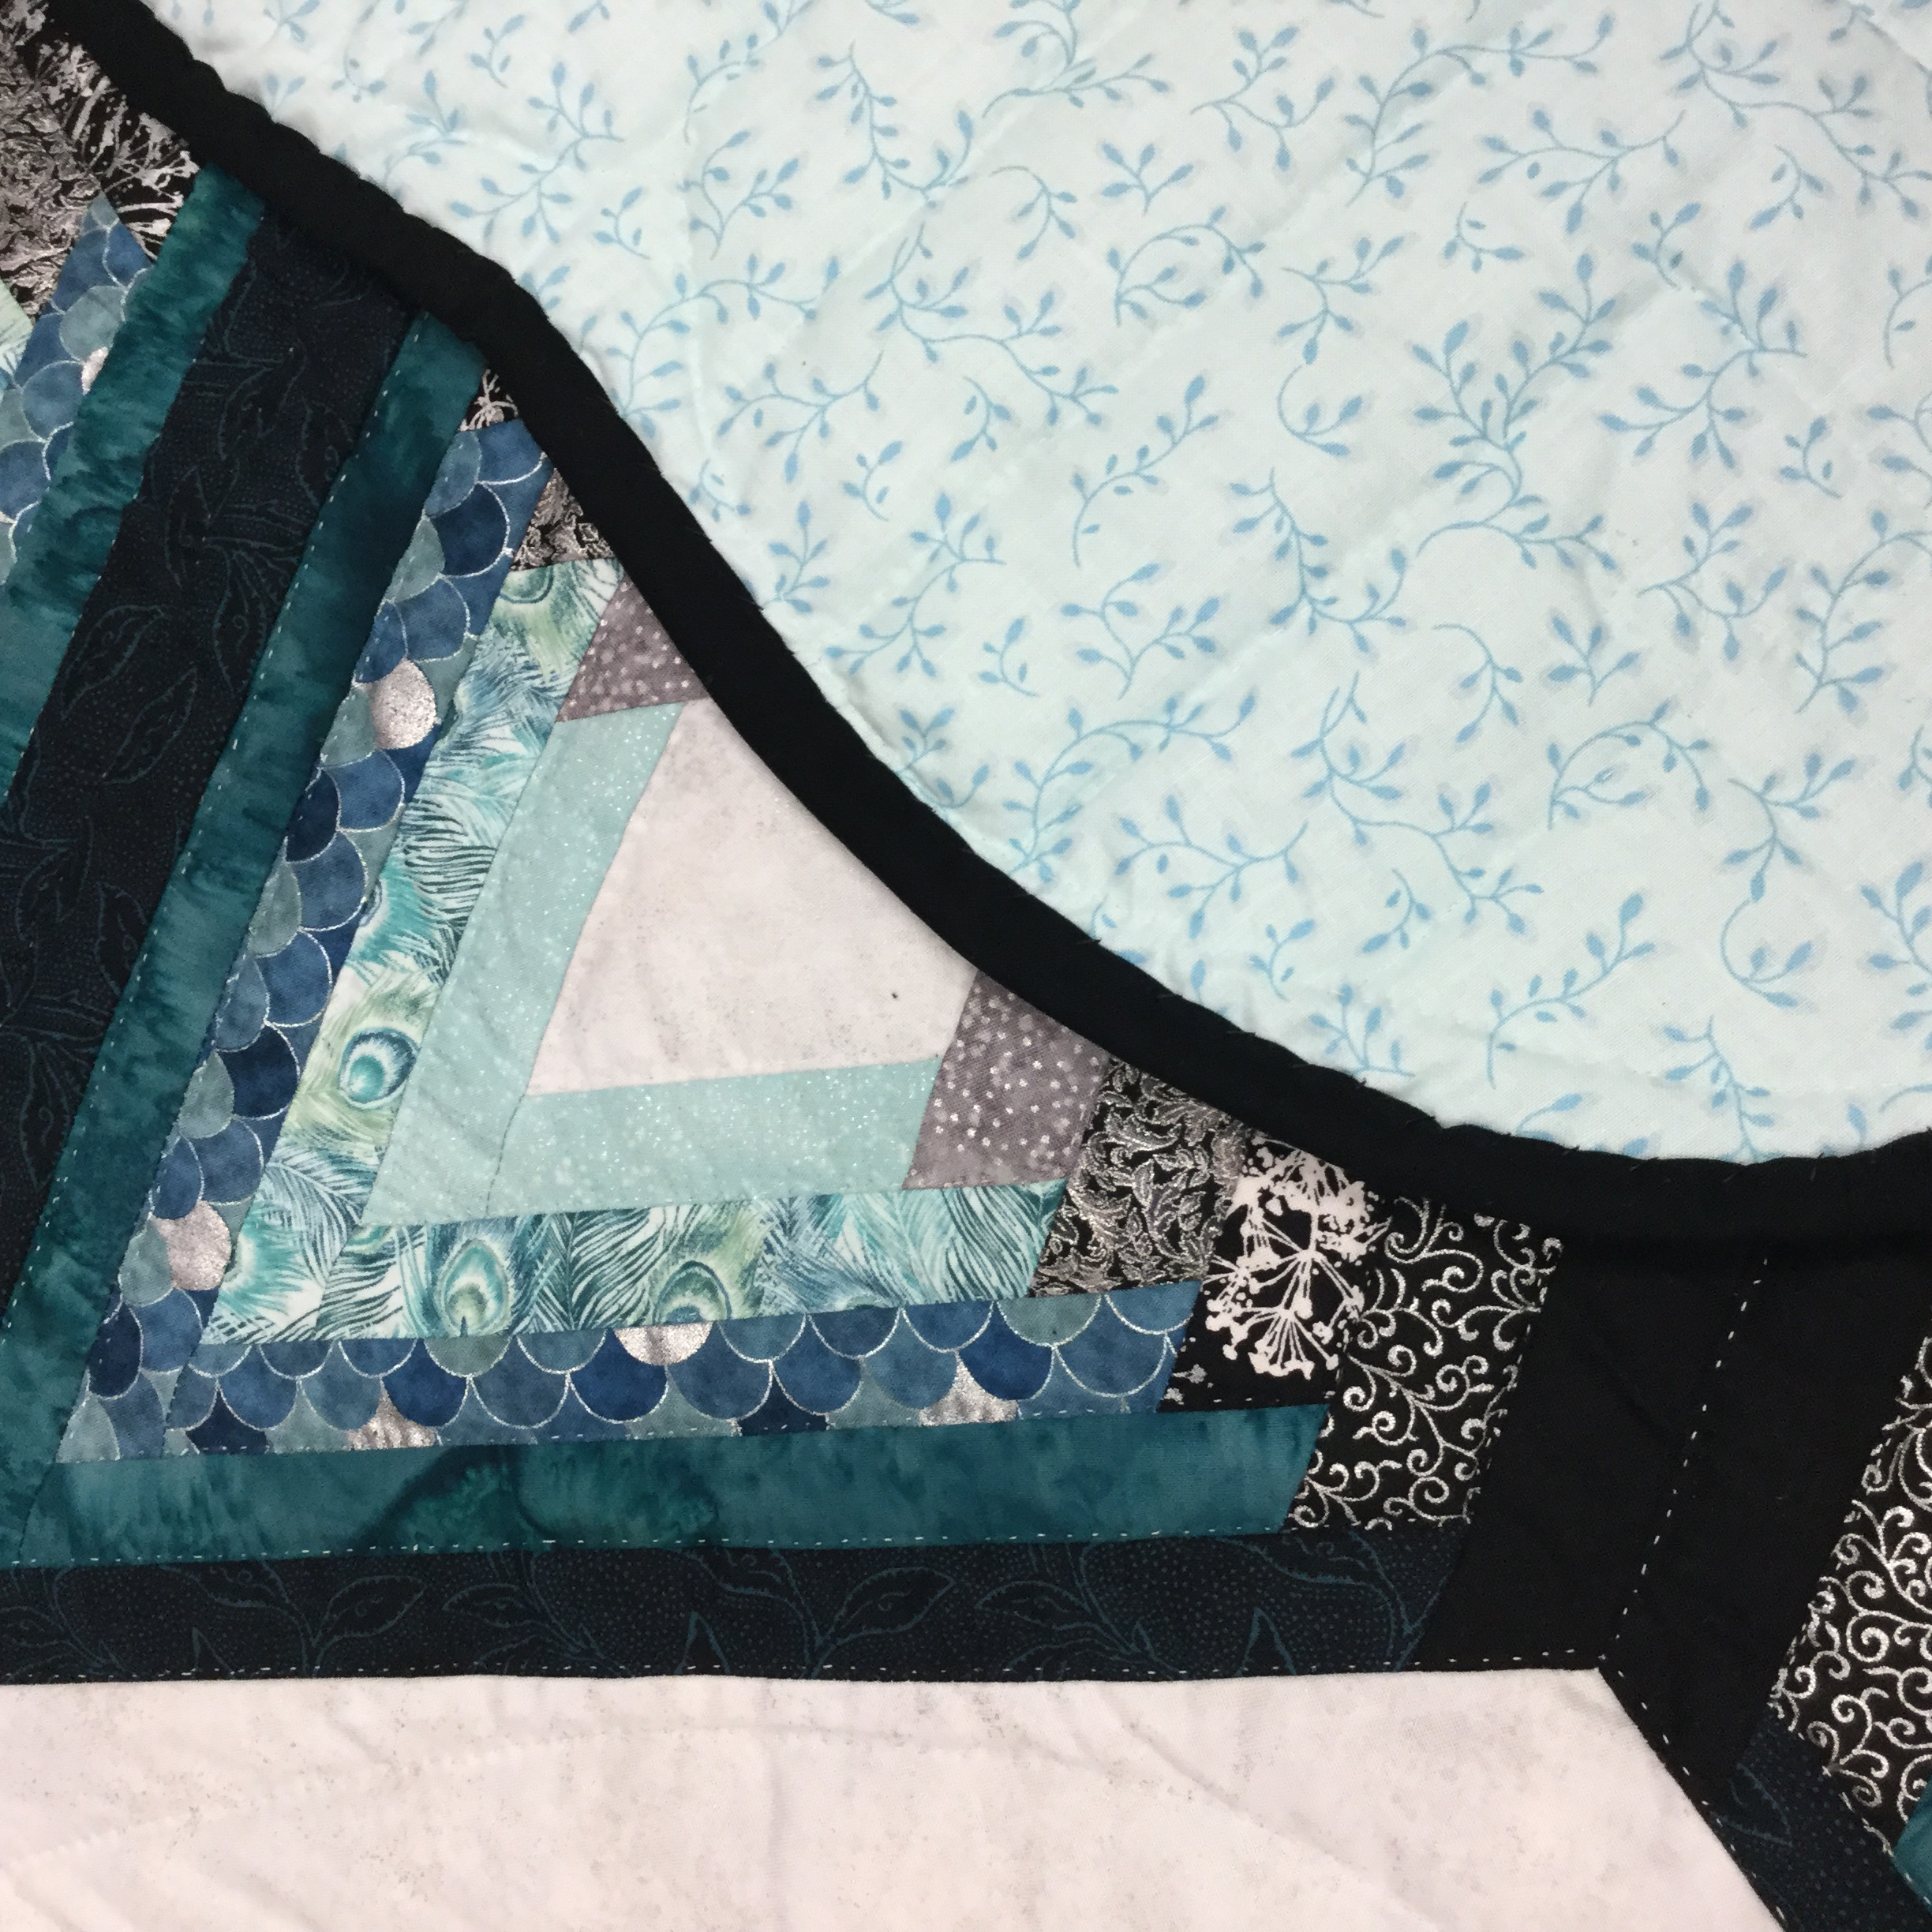 Chrysalis Star Quilt-Queen-Family Farm Handcrafts